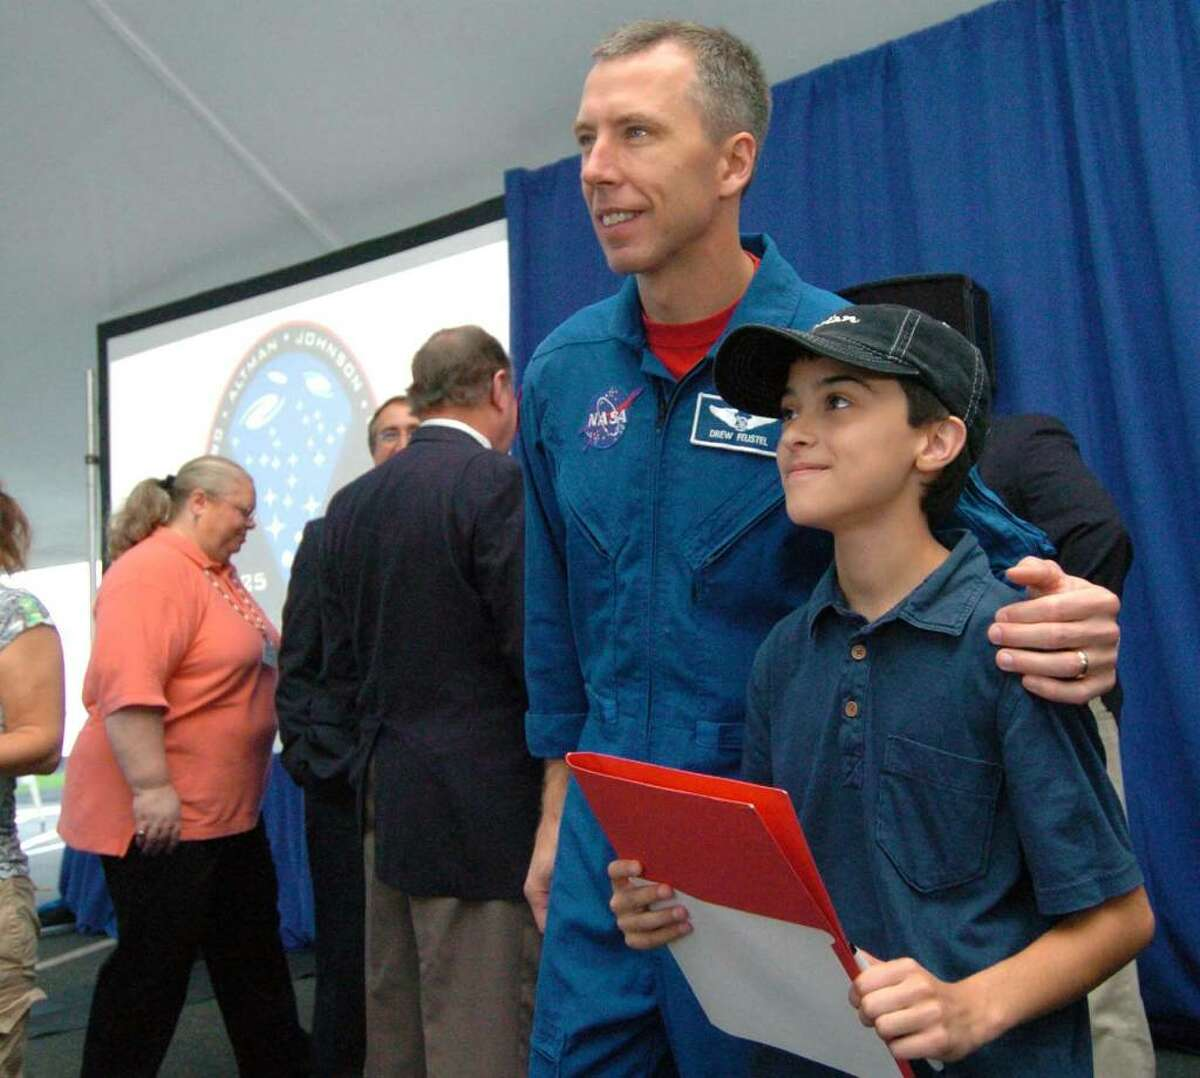 Astronaut Drew Feustel has his photo taken with Brandon Charron, 10 from Torrington at a presentation about the Hubble Telescope at Goodrich Optical Corporation in Danbury, CT August 18, 2009.